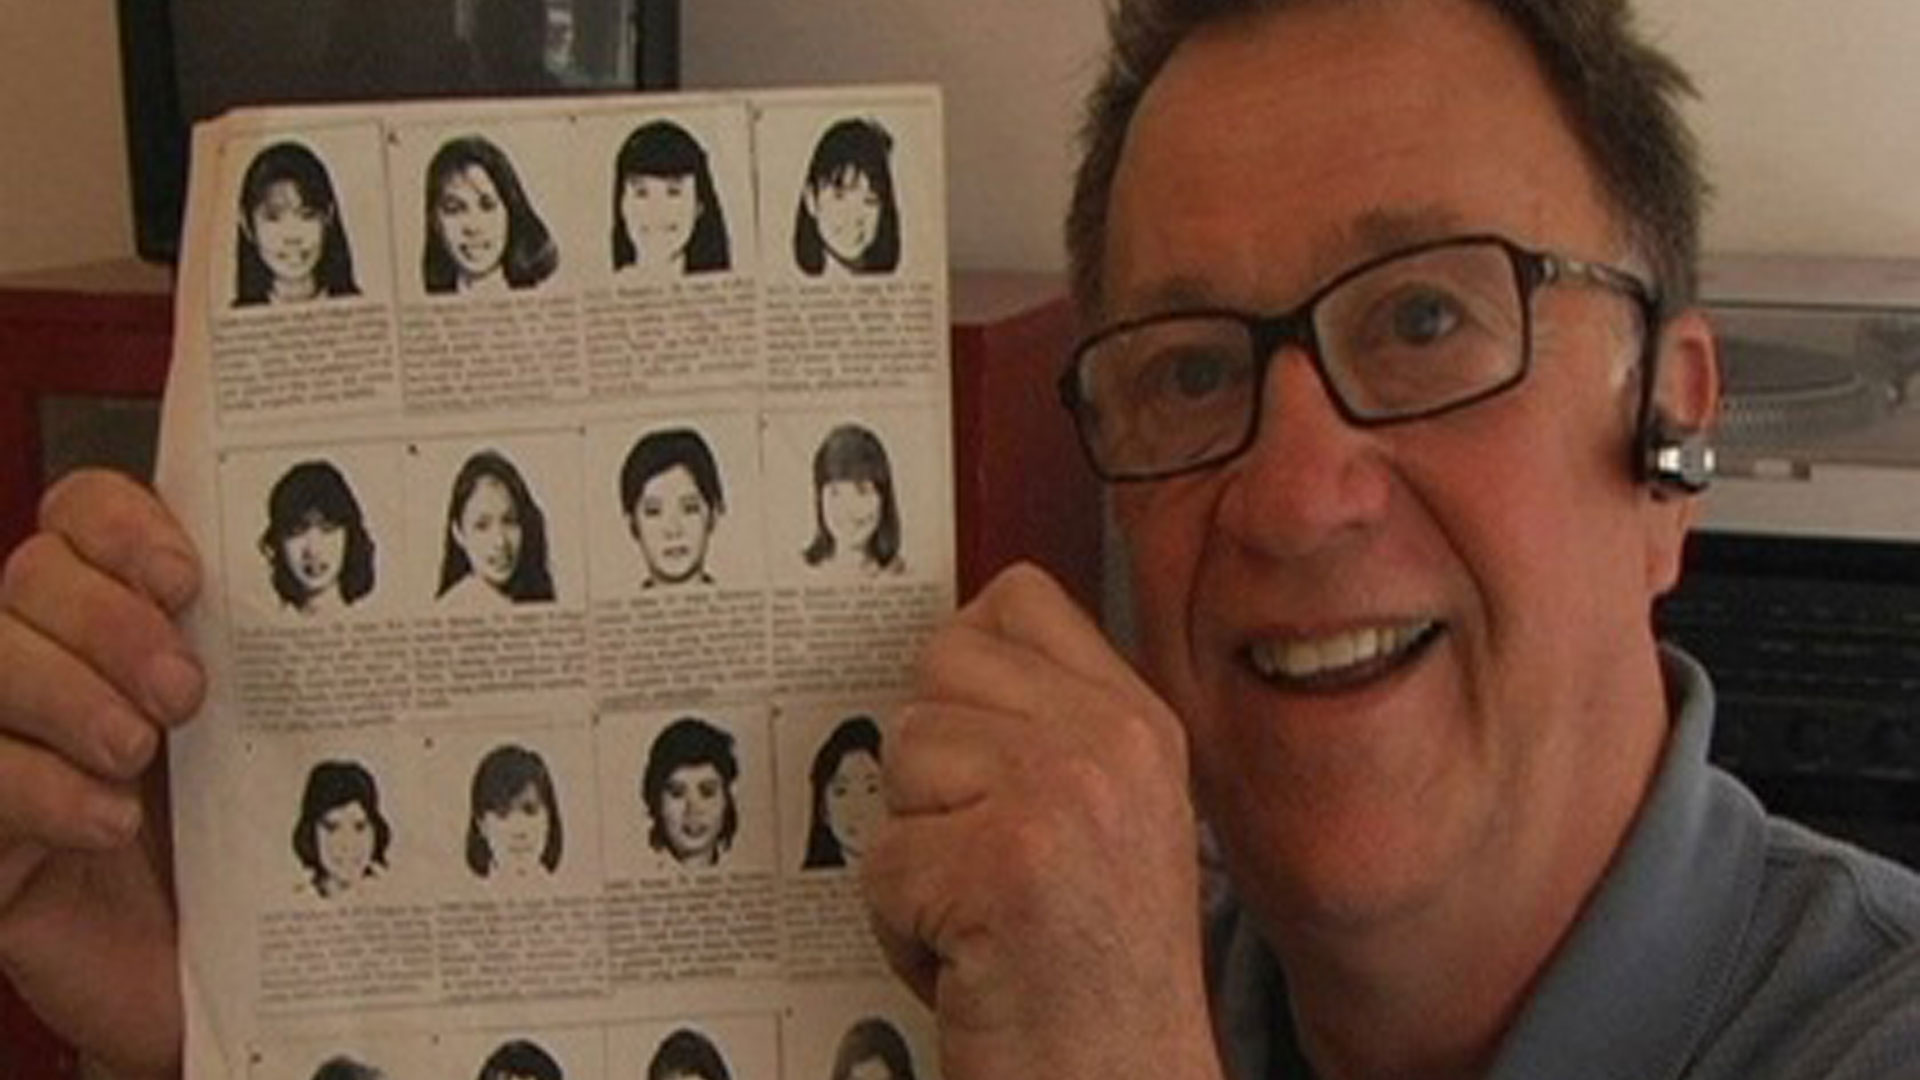 Steve holds up flier with headshots and bios of Asian women.